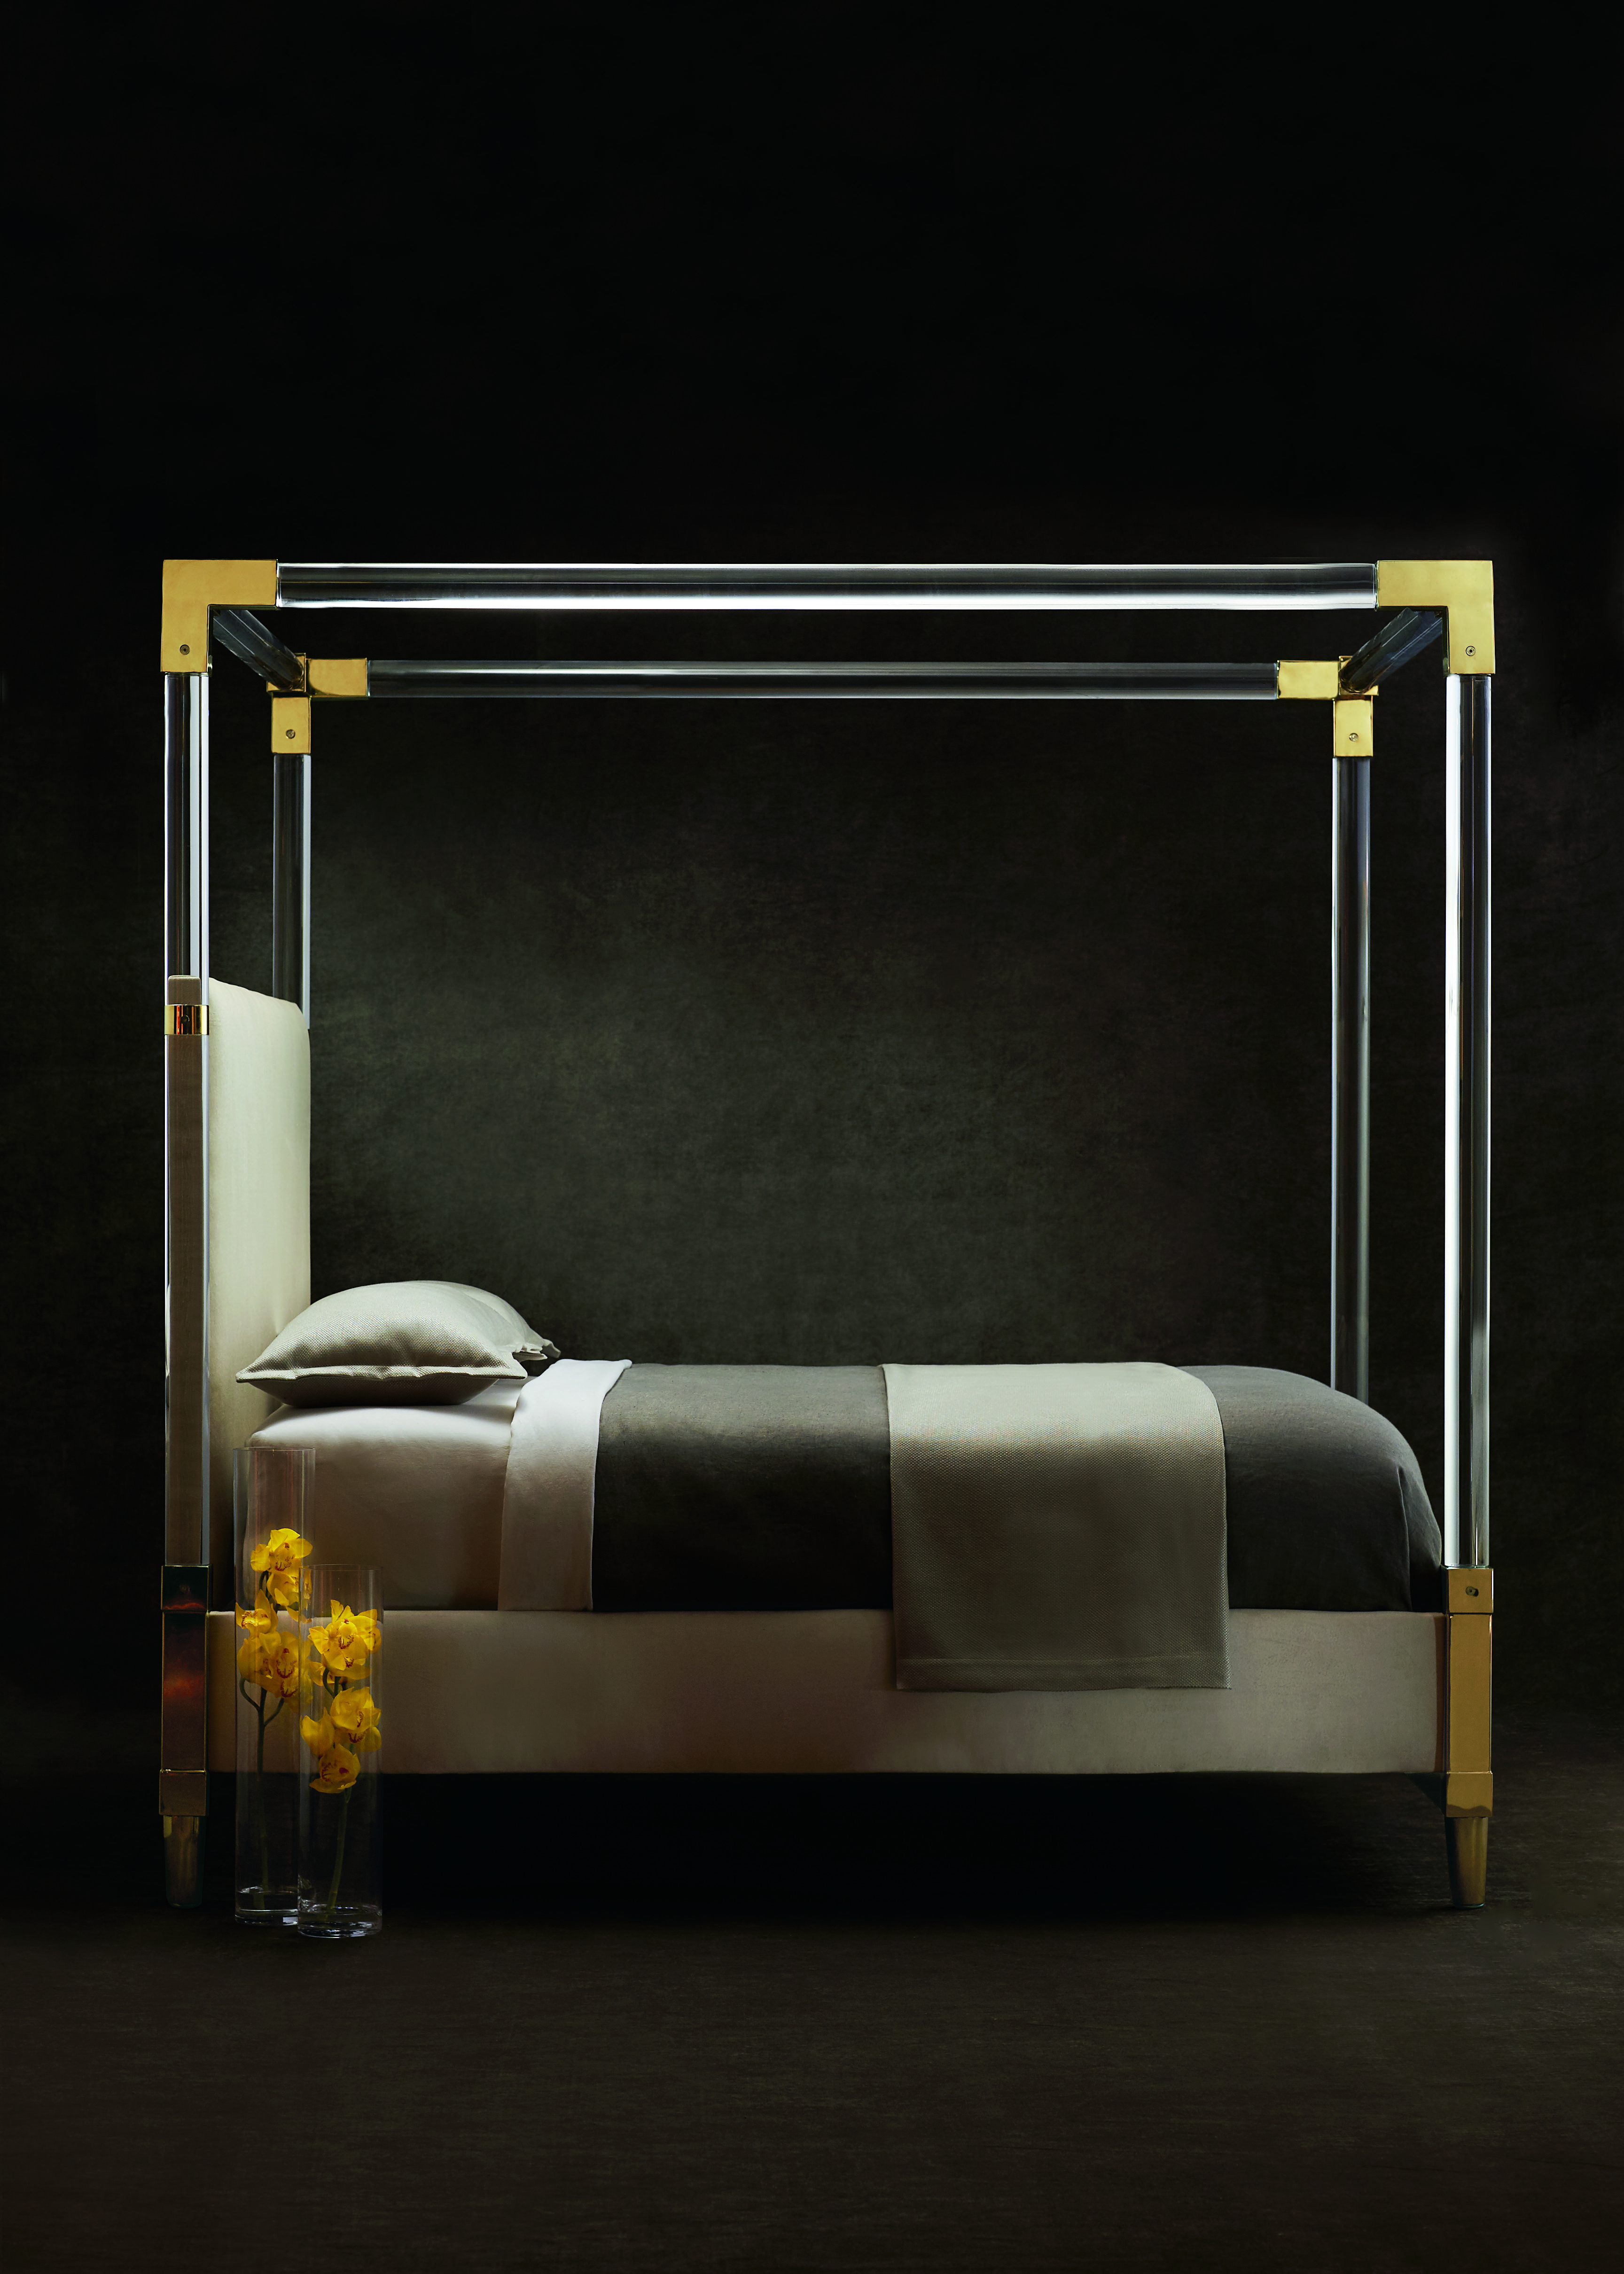 Aiden Acrylic Bed designed by Laura Niece, winner of 2016 ASFD Pinnacle Award (image courtesy of Bernhardt Furniture)